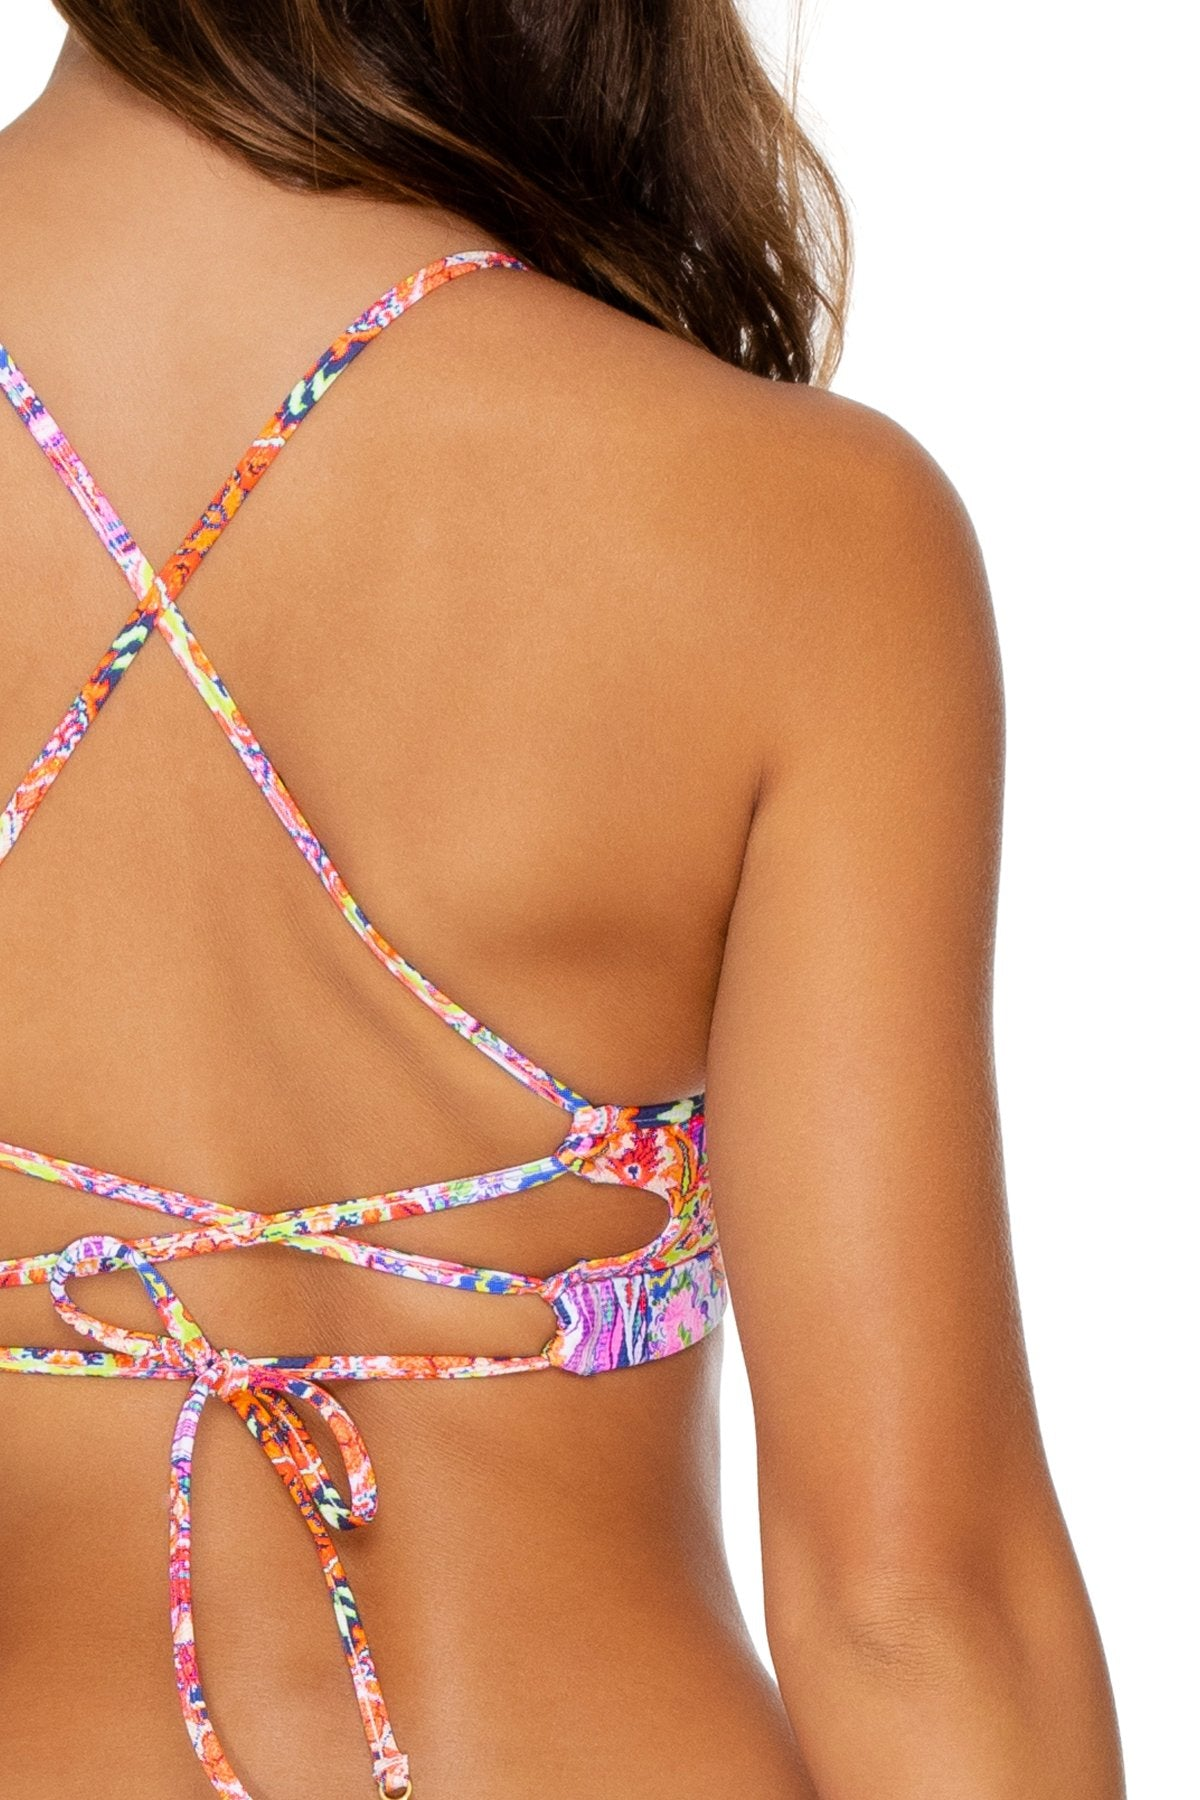 RAYANDO EL SOL - Underwire Top & Drawstring Side  Bottom • Multicolor